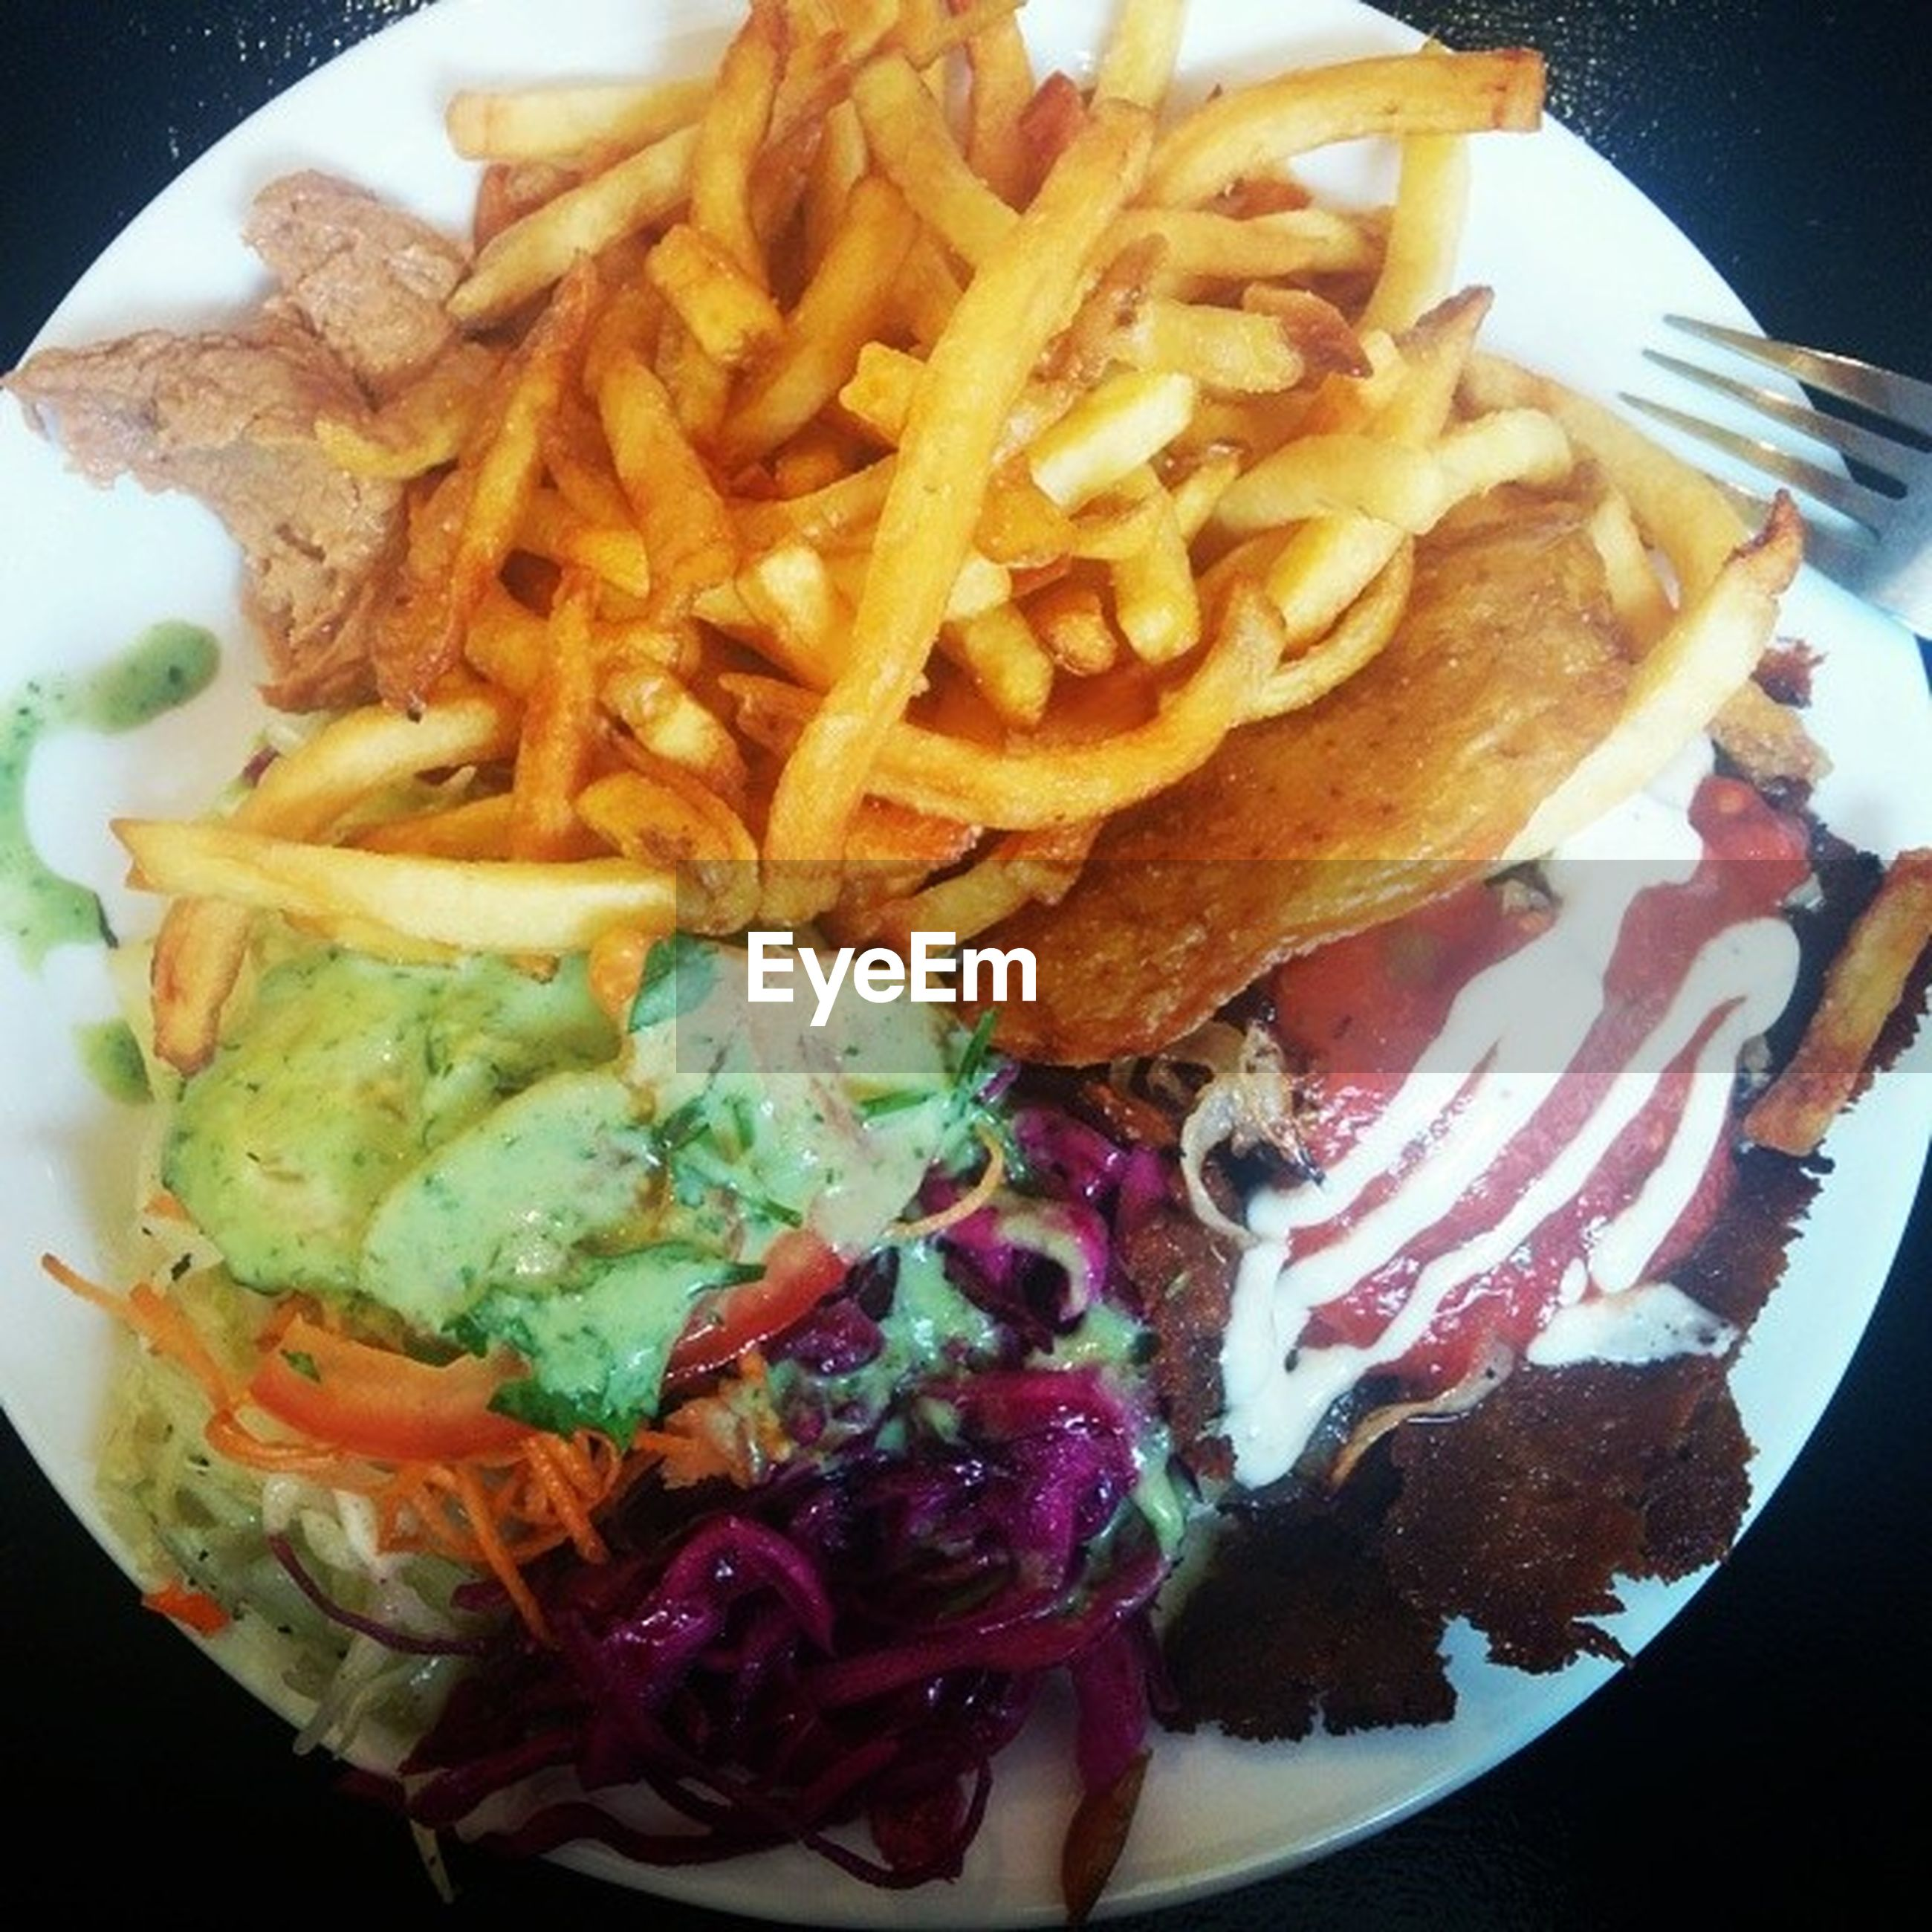 food, food and drink, freshness, ready-to-eat, indoors, plate, still life, close-up, serving size, meat, meal, indulgence, unhealthy eating, french fries, high angle view, fried, cooked, fast food, prepared potato